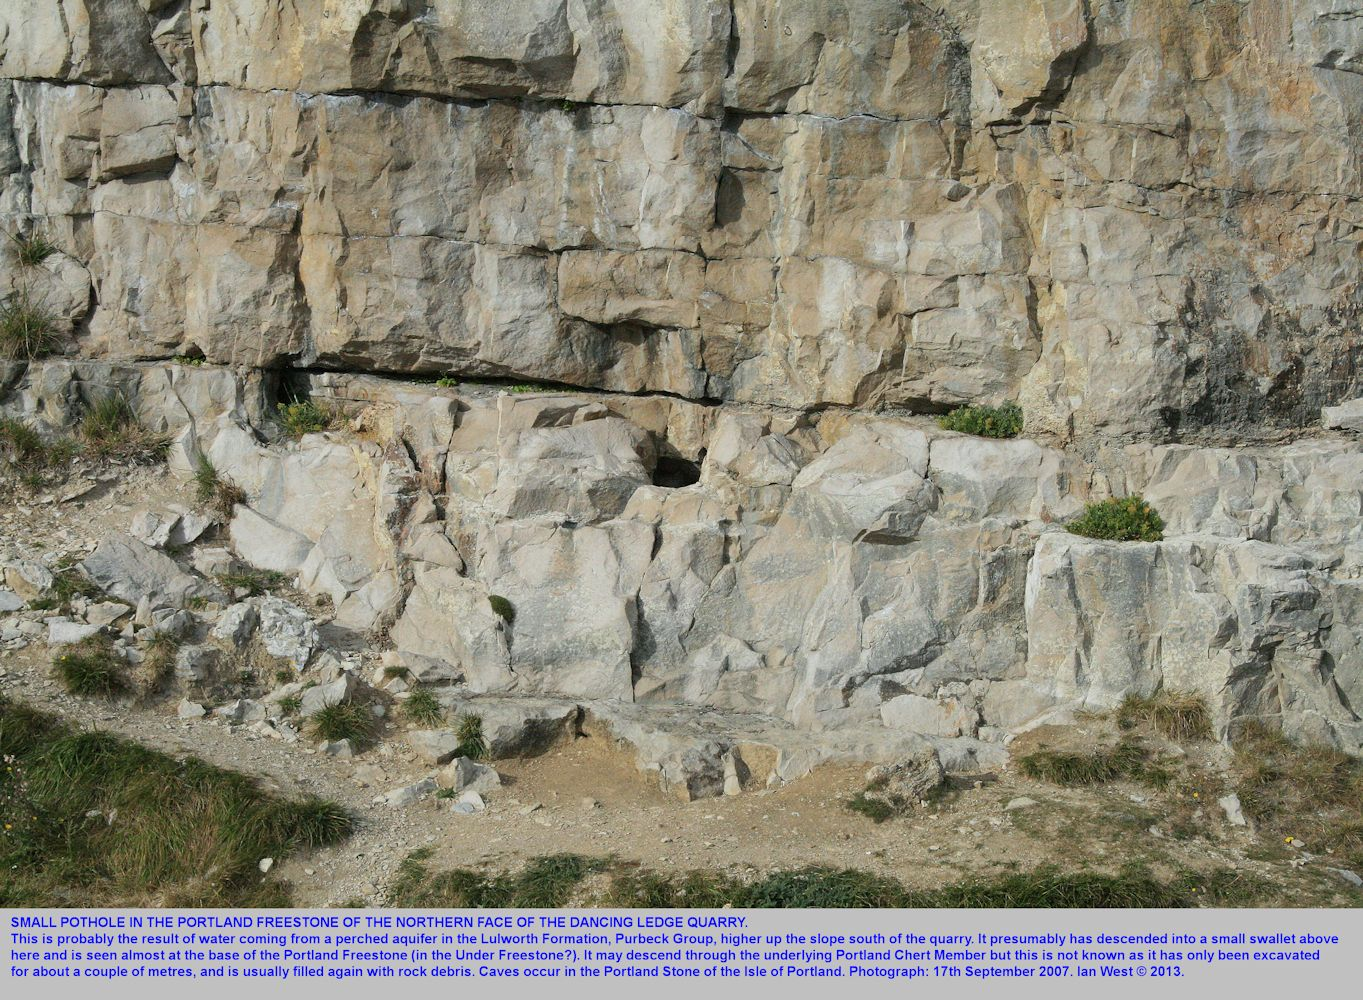 The small pothole in the north side of the Dancing Ledge quarry, near Swanage, Isle of Purbeck, Dorset, as seen on 17th September 2007